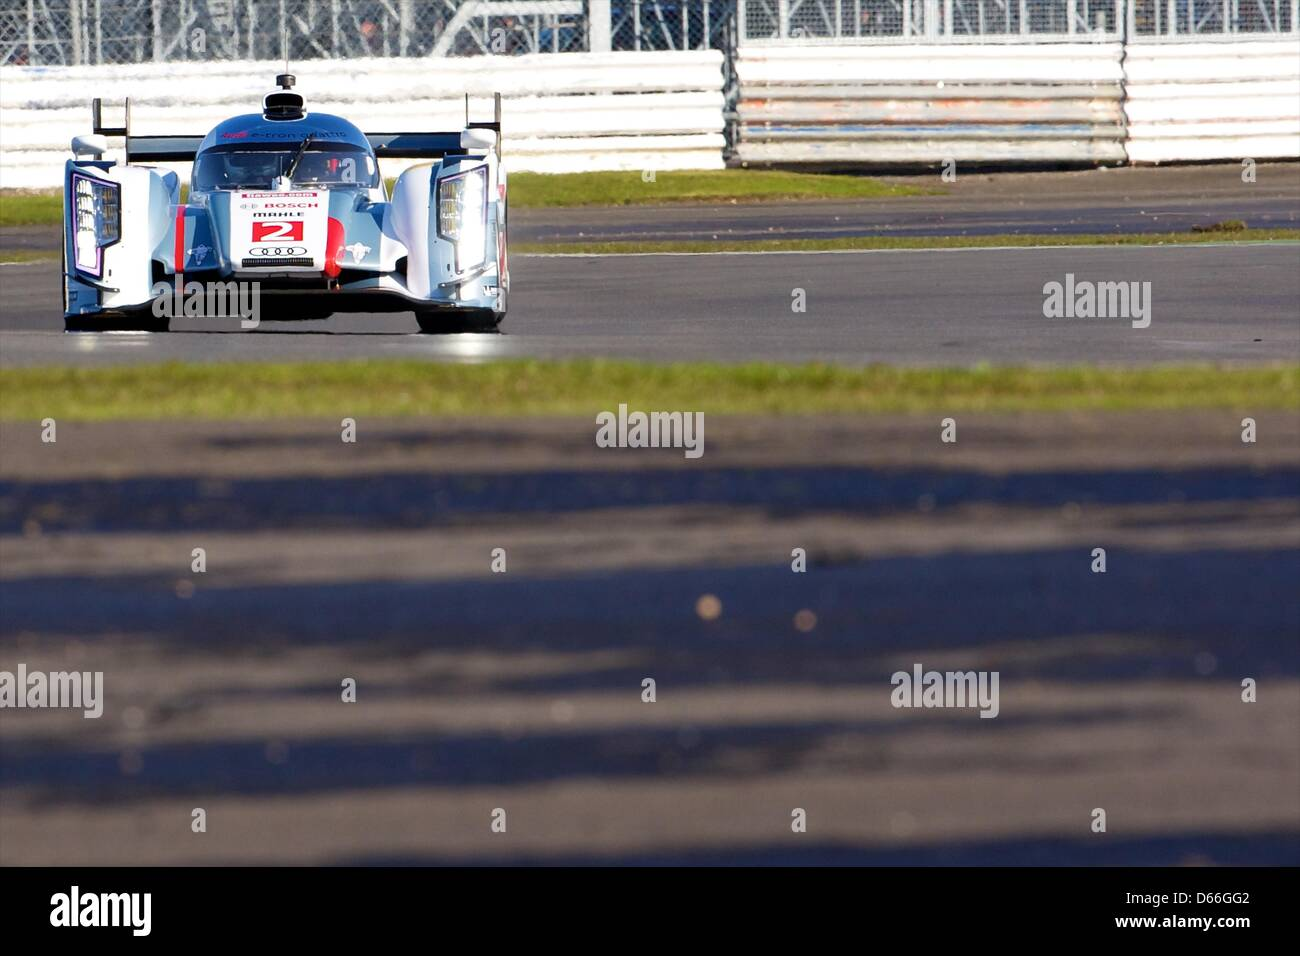 13.04.2013 Silverstone, England. Audi Sport Team Joest LMP1 Audi R18 e-tron quattro driven by Tom Kristensen (DNK), Stock Photo